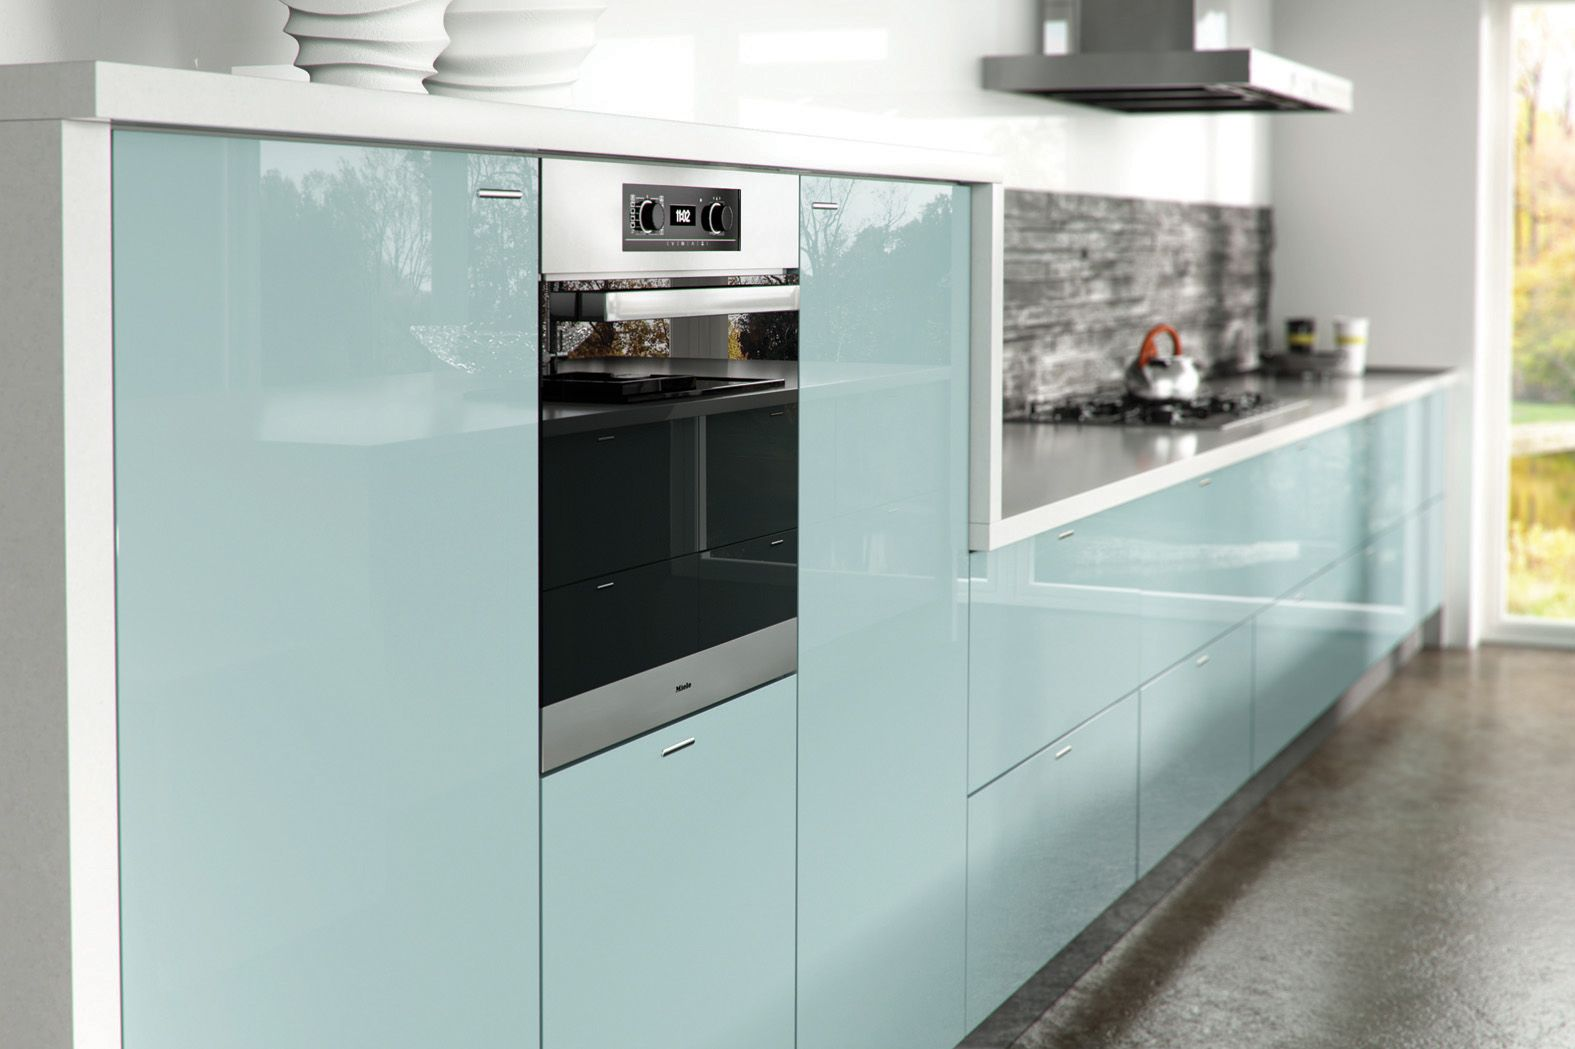 Metallicblue Acrylic High Gloss Kitchen Doors